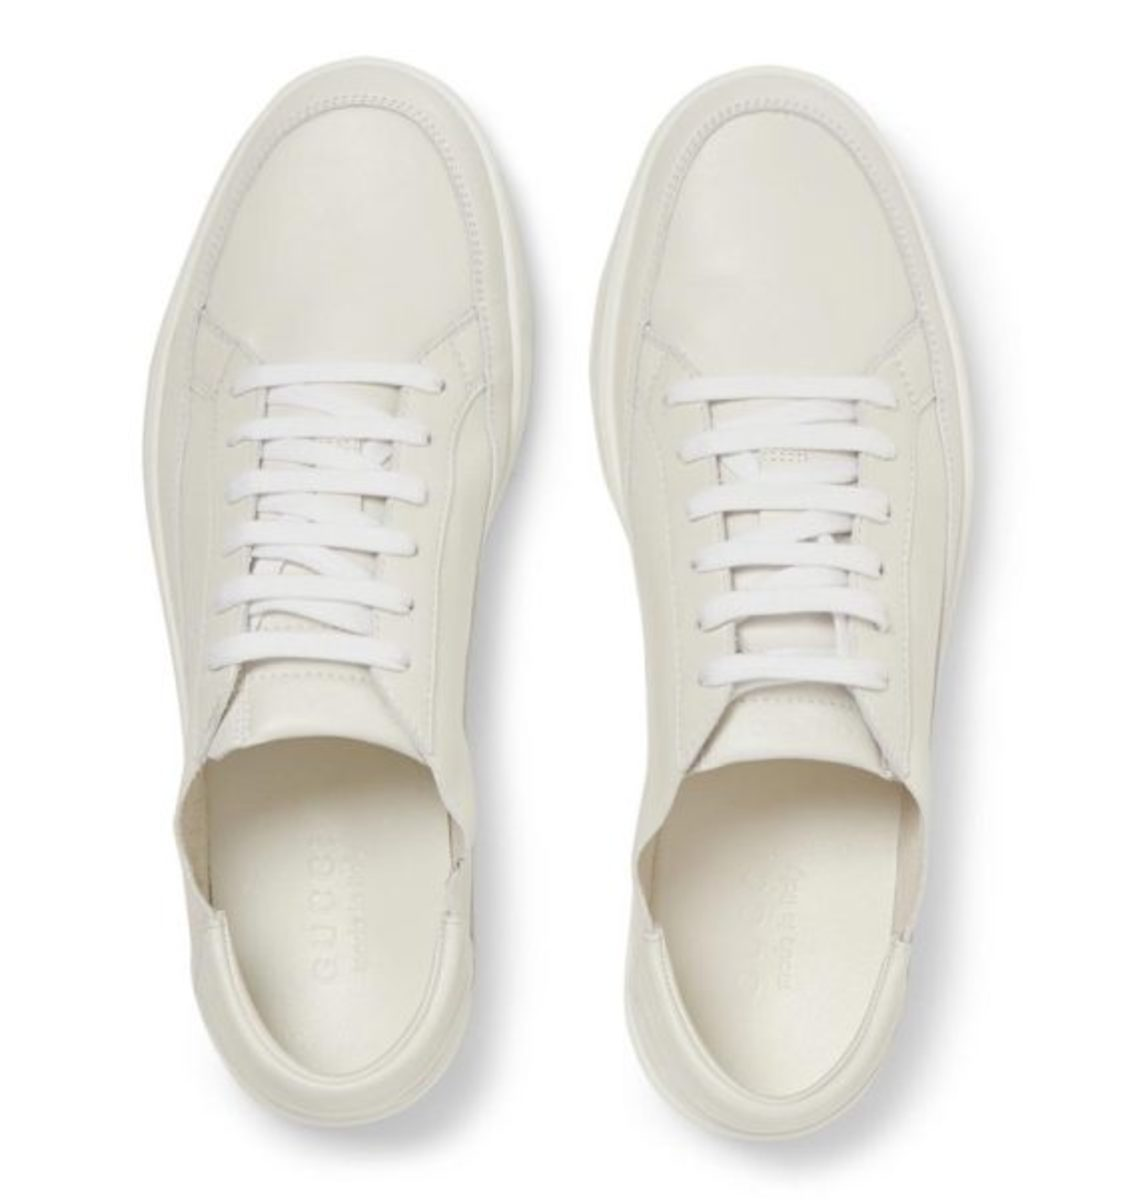 gucci-leather-low-top-sneakers-05